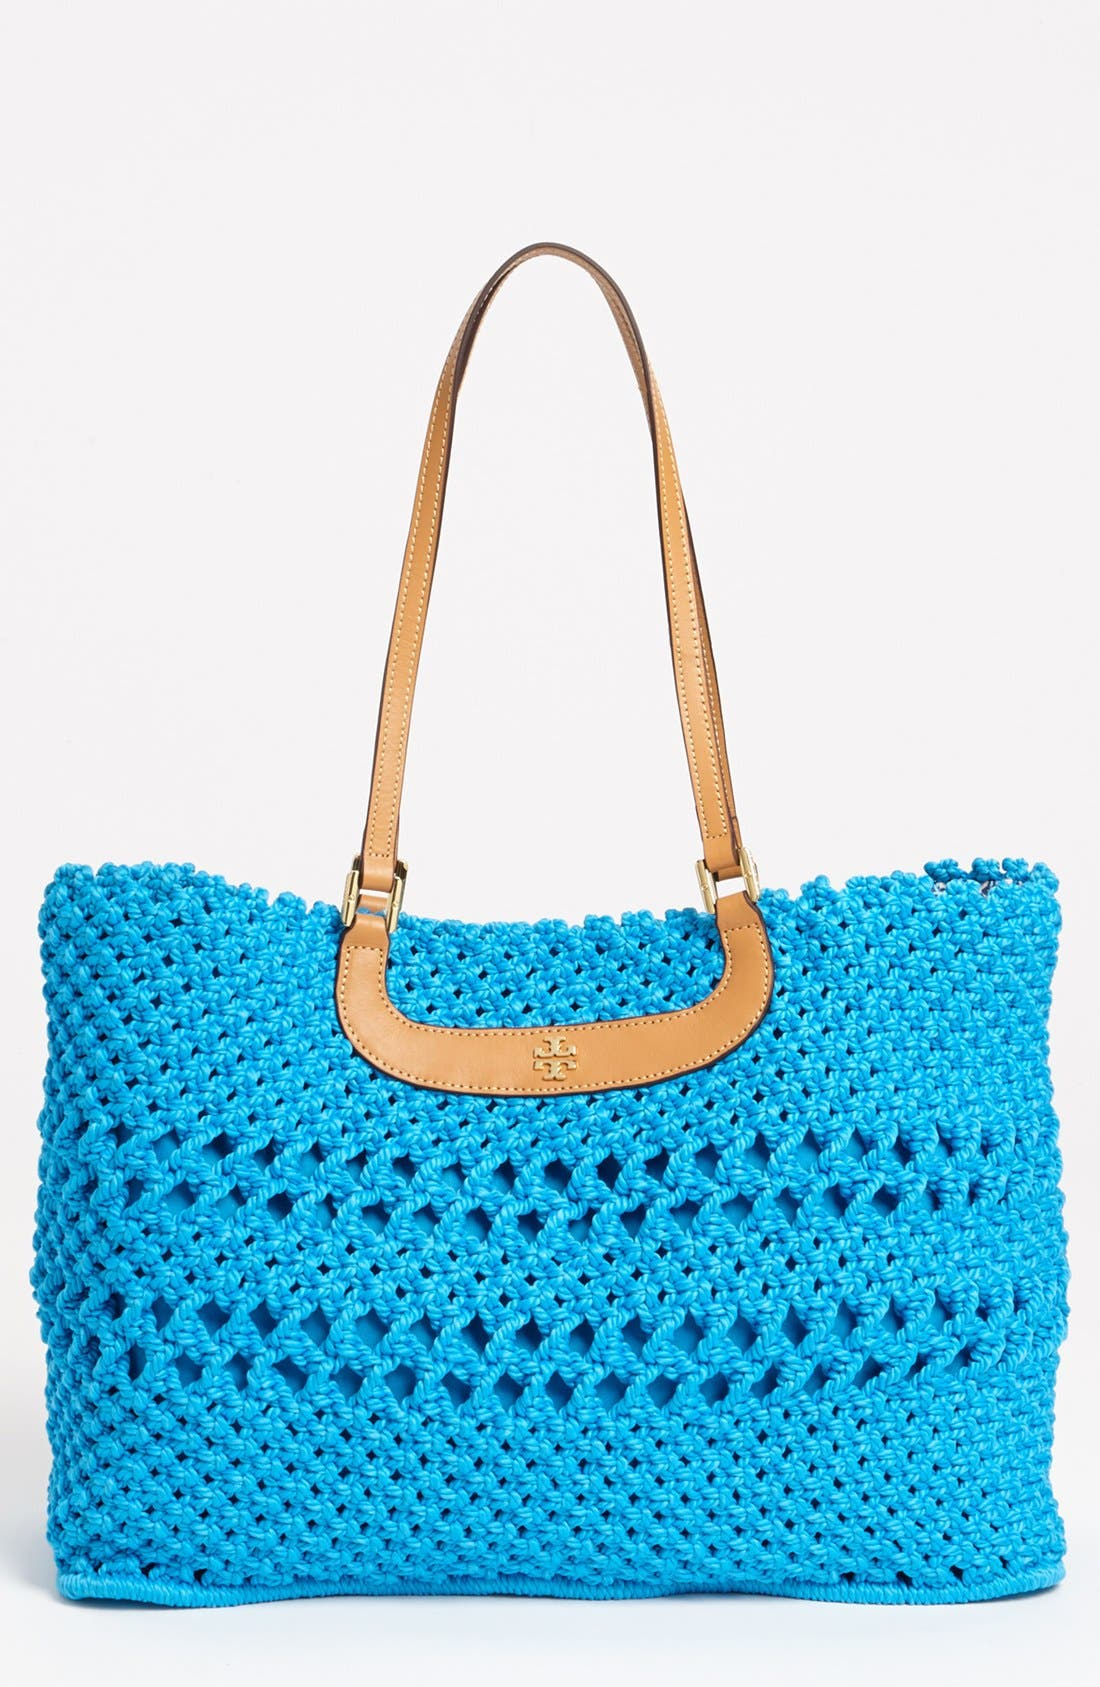 Alternate Image 1 Selected - Tory Burch 'Dawson - Large' Crocheted Tote